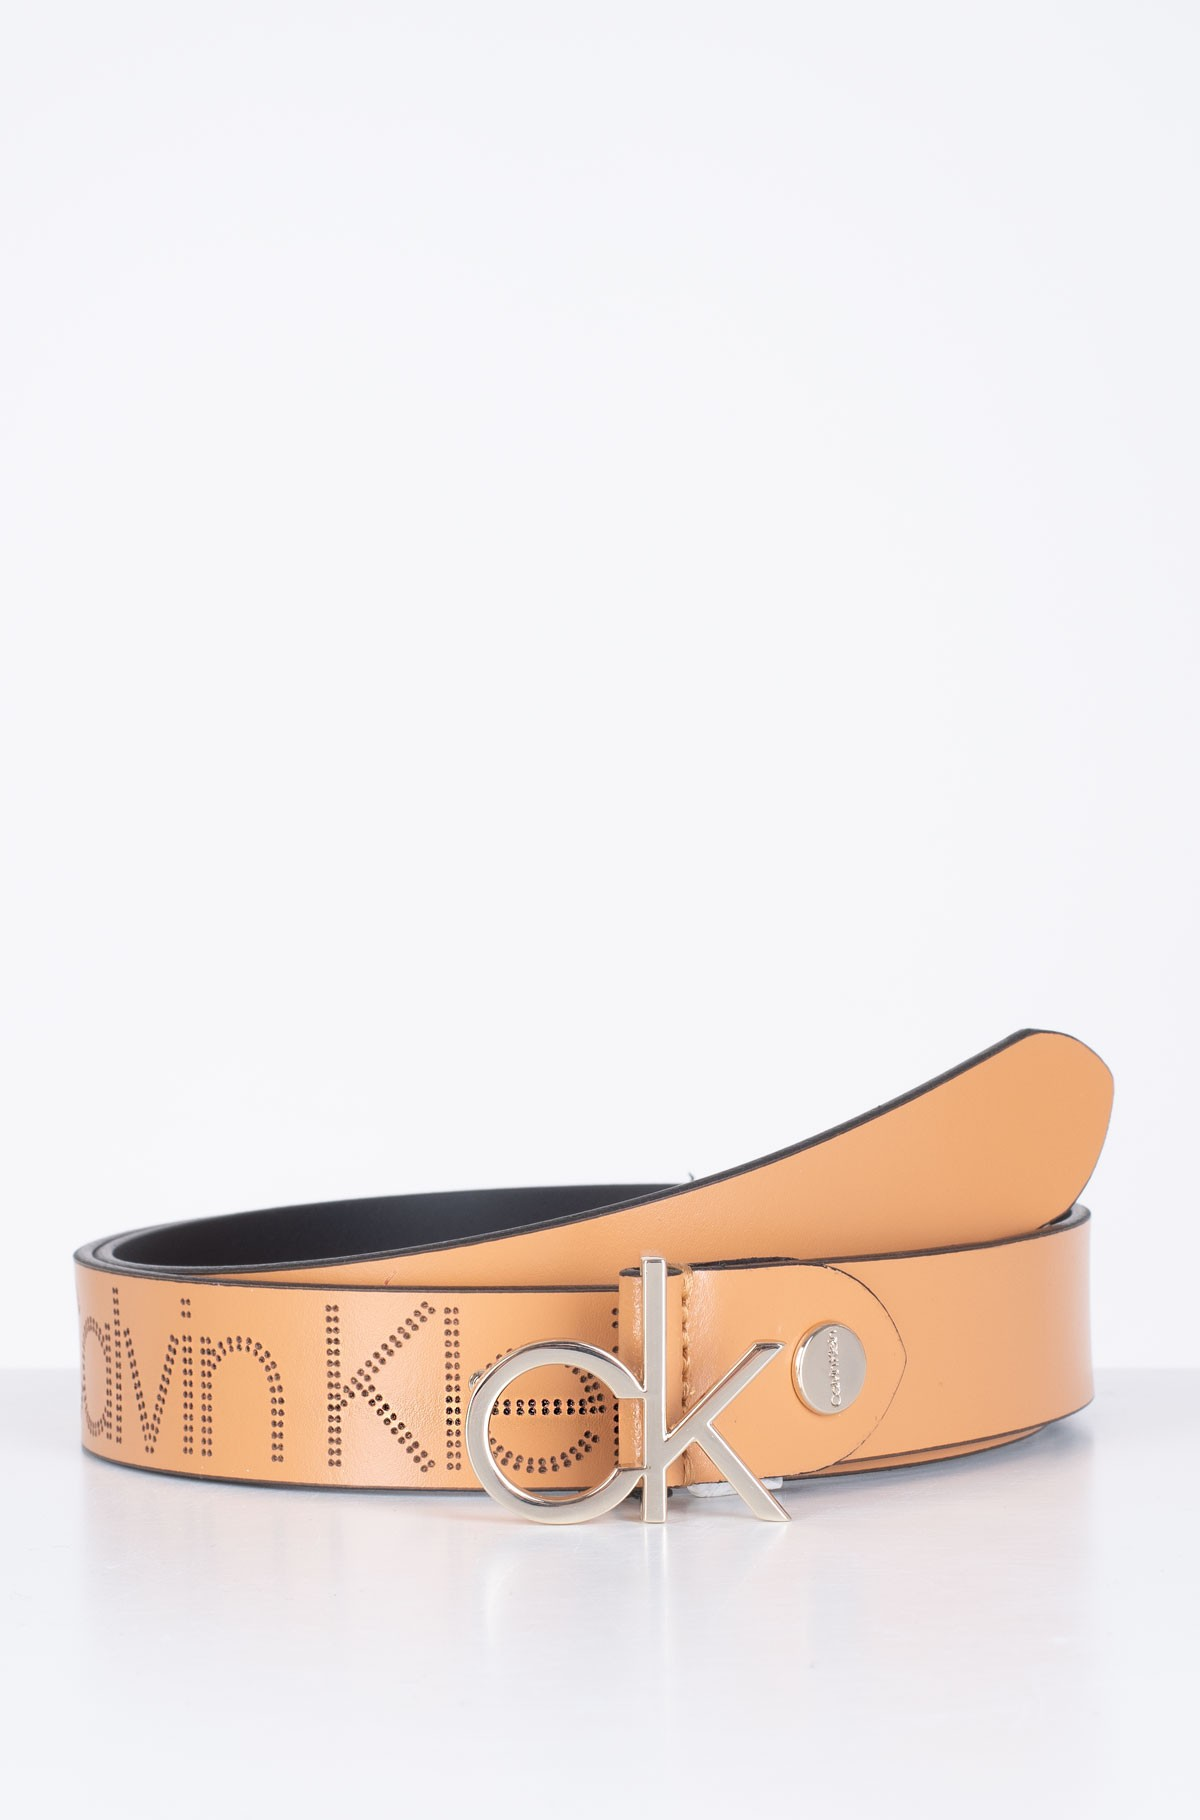 Vöö CK LOW BELT ADJ 3.0-full-1